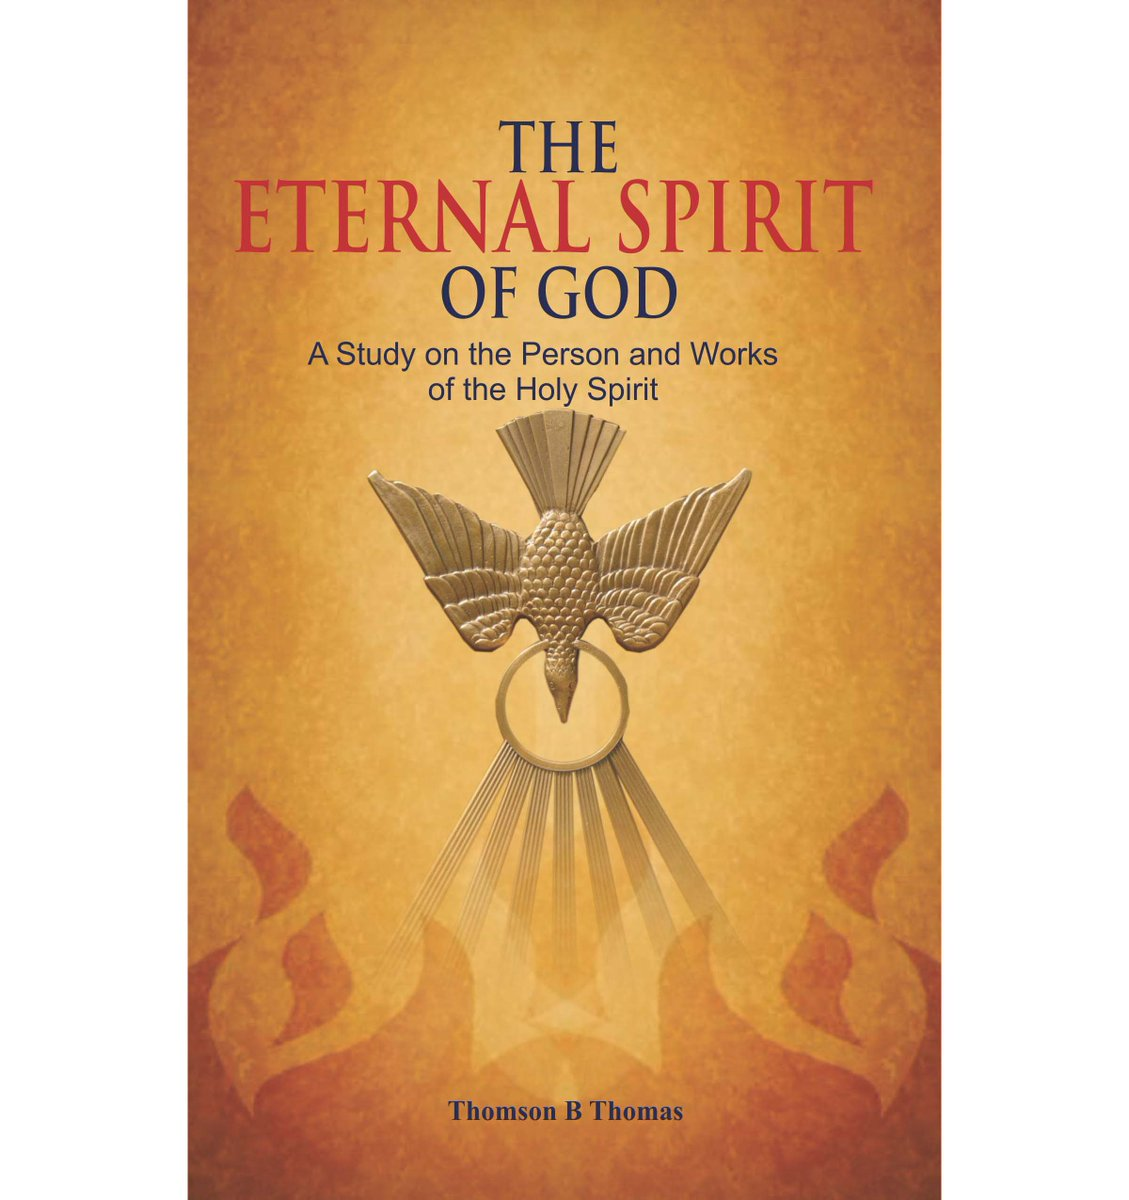 test Twitter Media - https://t.co/6G0Zxlb96z 'The eternal spirit of God' is a fresh study on the person and work of the Holy Spirit. The topics such as tongues speaking, anointing, filling of Spirit, baptism in the Spirit etc have always caused divisions among Bible students. https://t.co/BghOQ0txYh